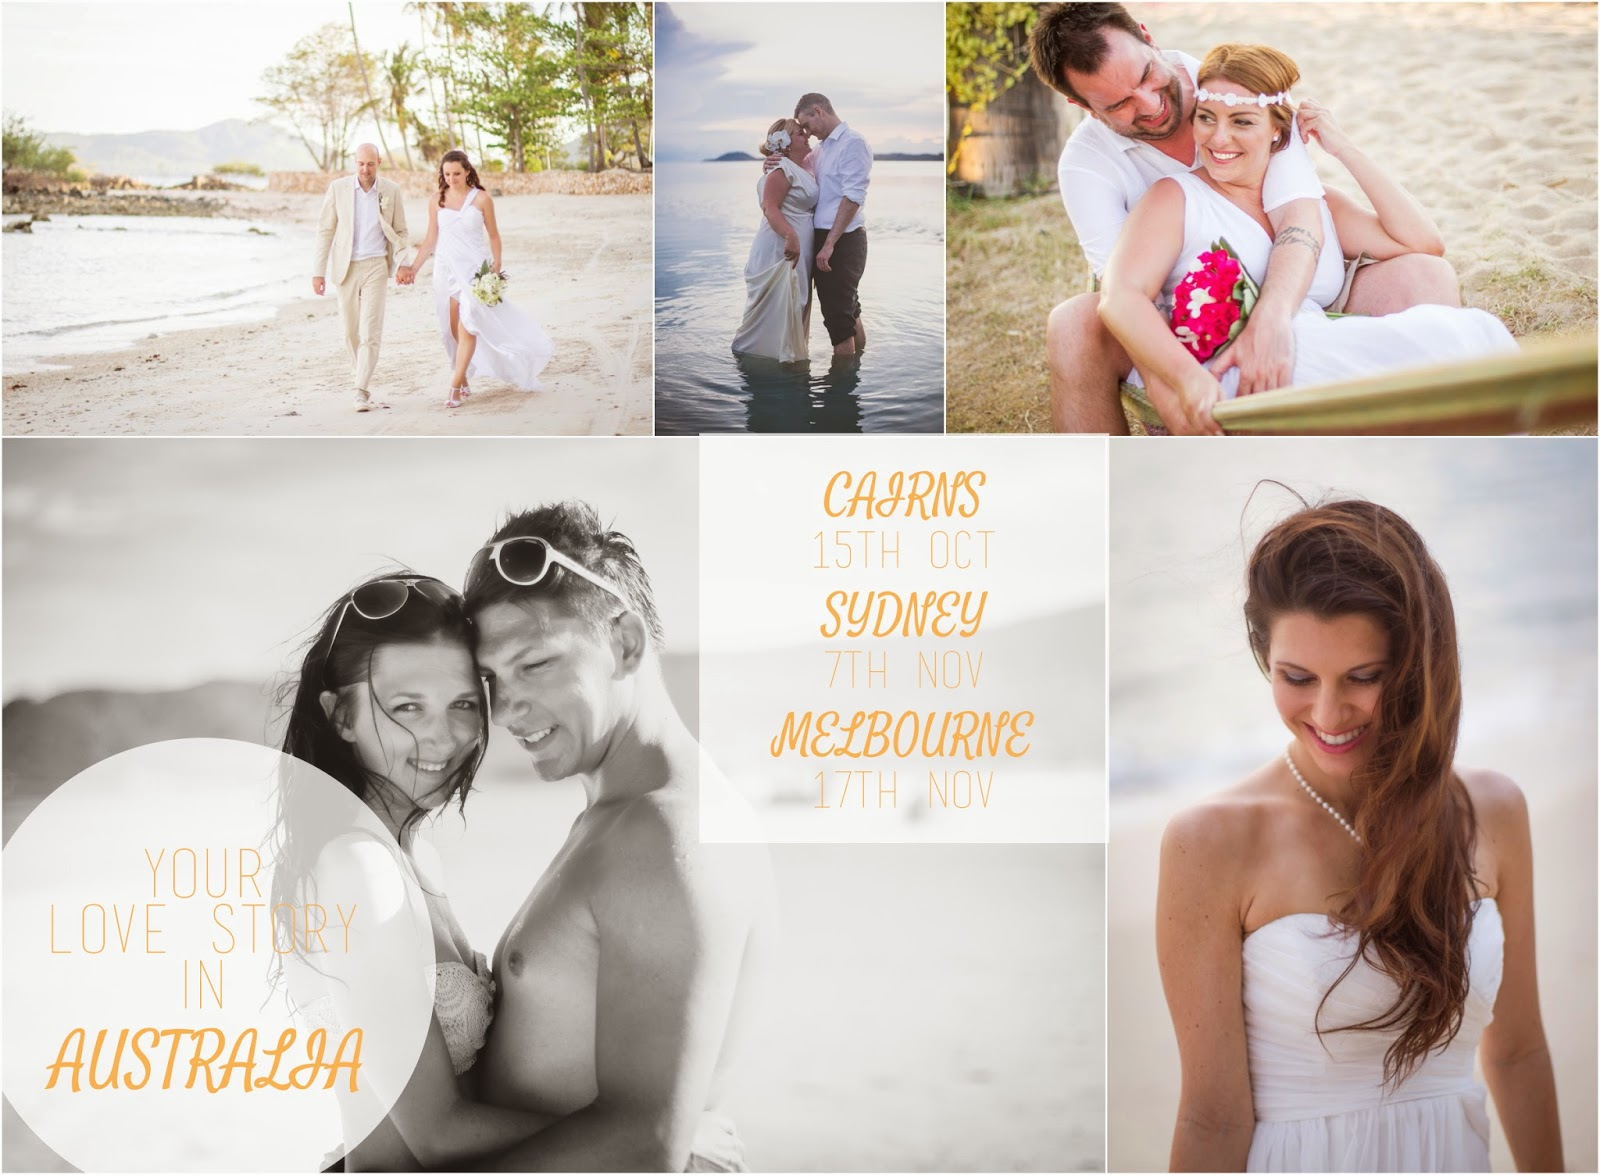 Thailand Wedding Photographer travelling to Australia, travels to Cairns, Melbourne and Sydney